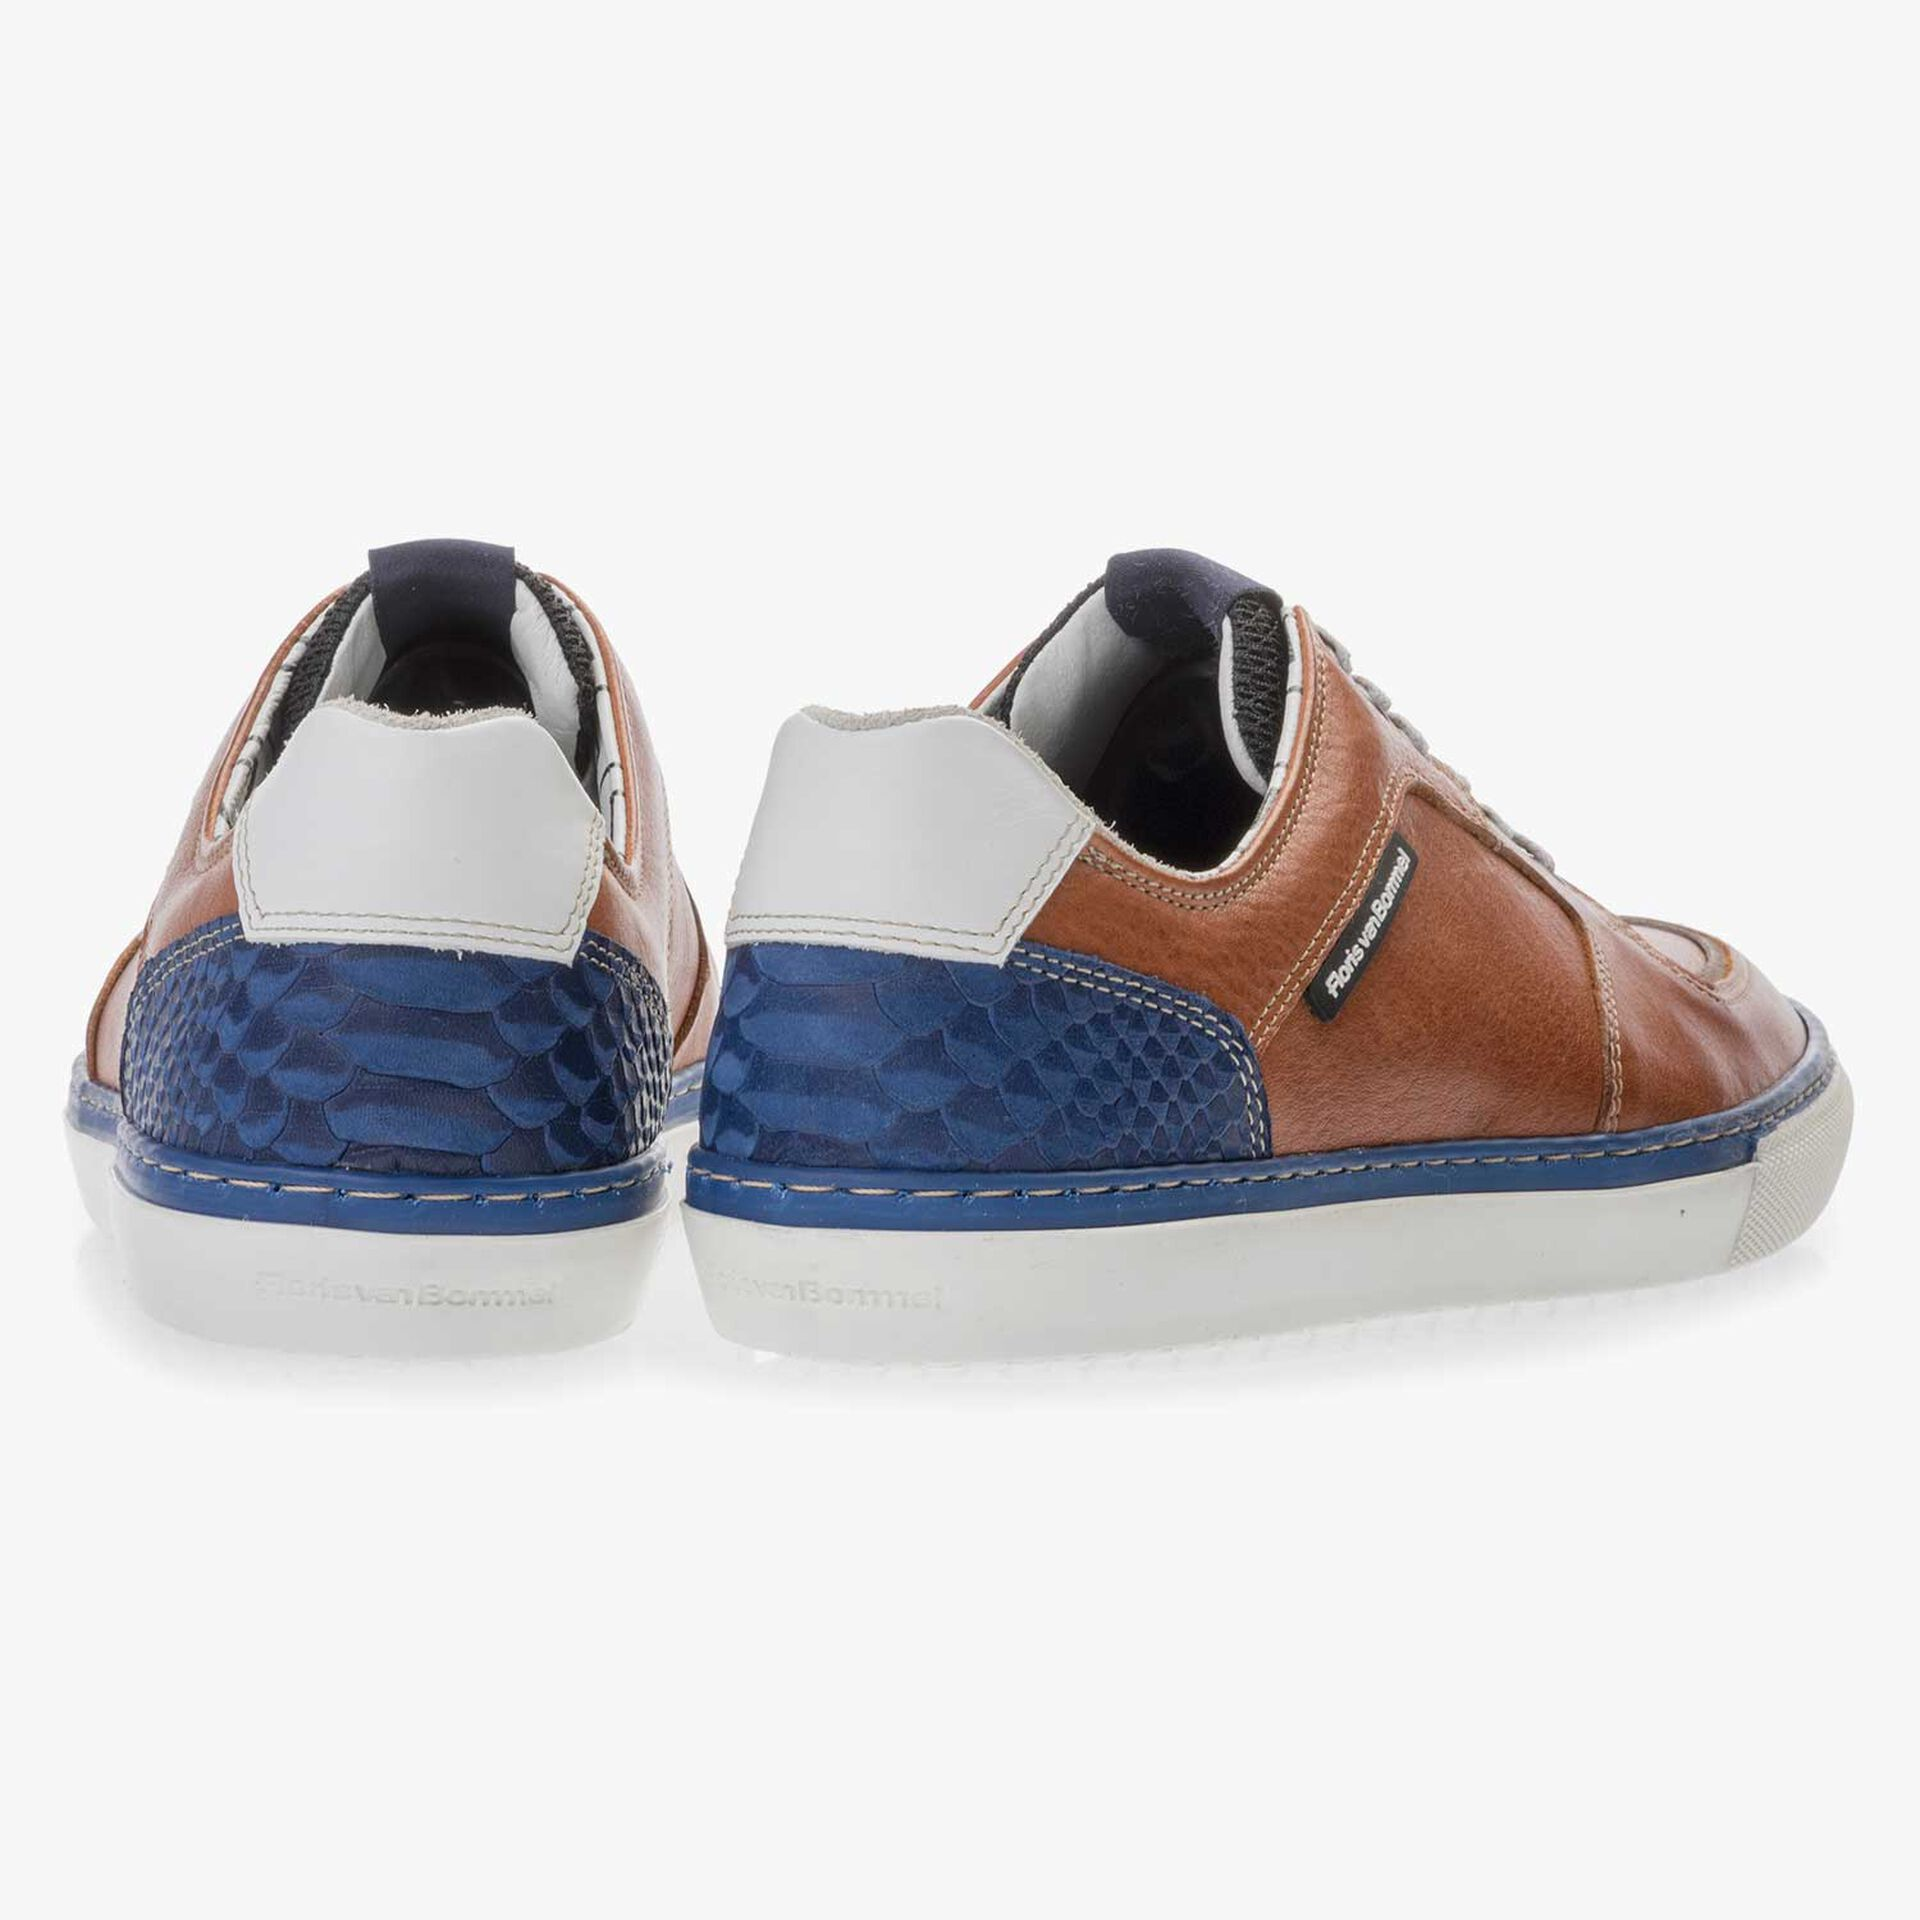 Cognac-coloured sneaker made of calf's leather